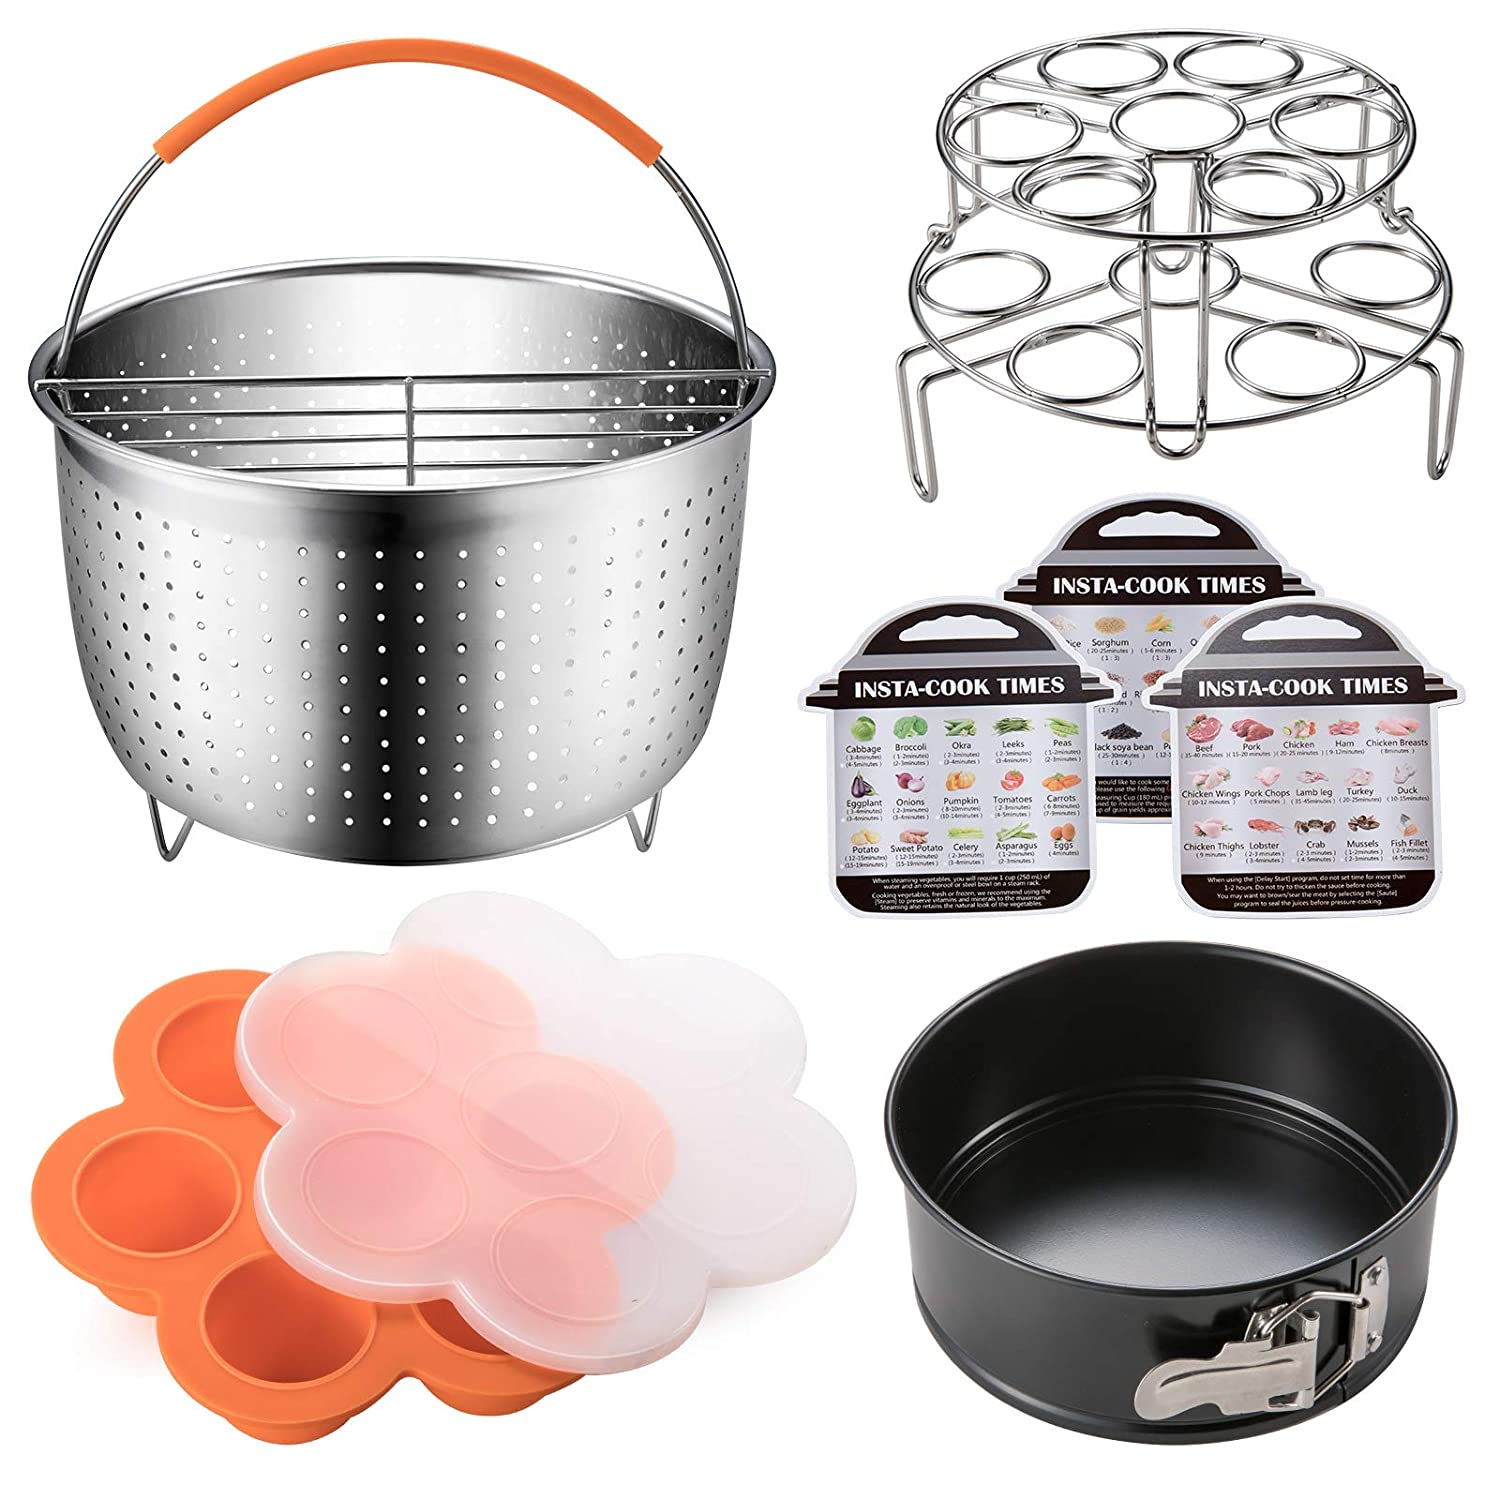 Accessories Set Compatible with Instant Pot 6,8 QT, Steamer Basket with Divider, Springform Pan, Egg Bites Mold, Stackable Steamer Racks, Magnetic Cheat Sheet by Nenazzz